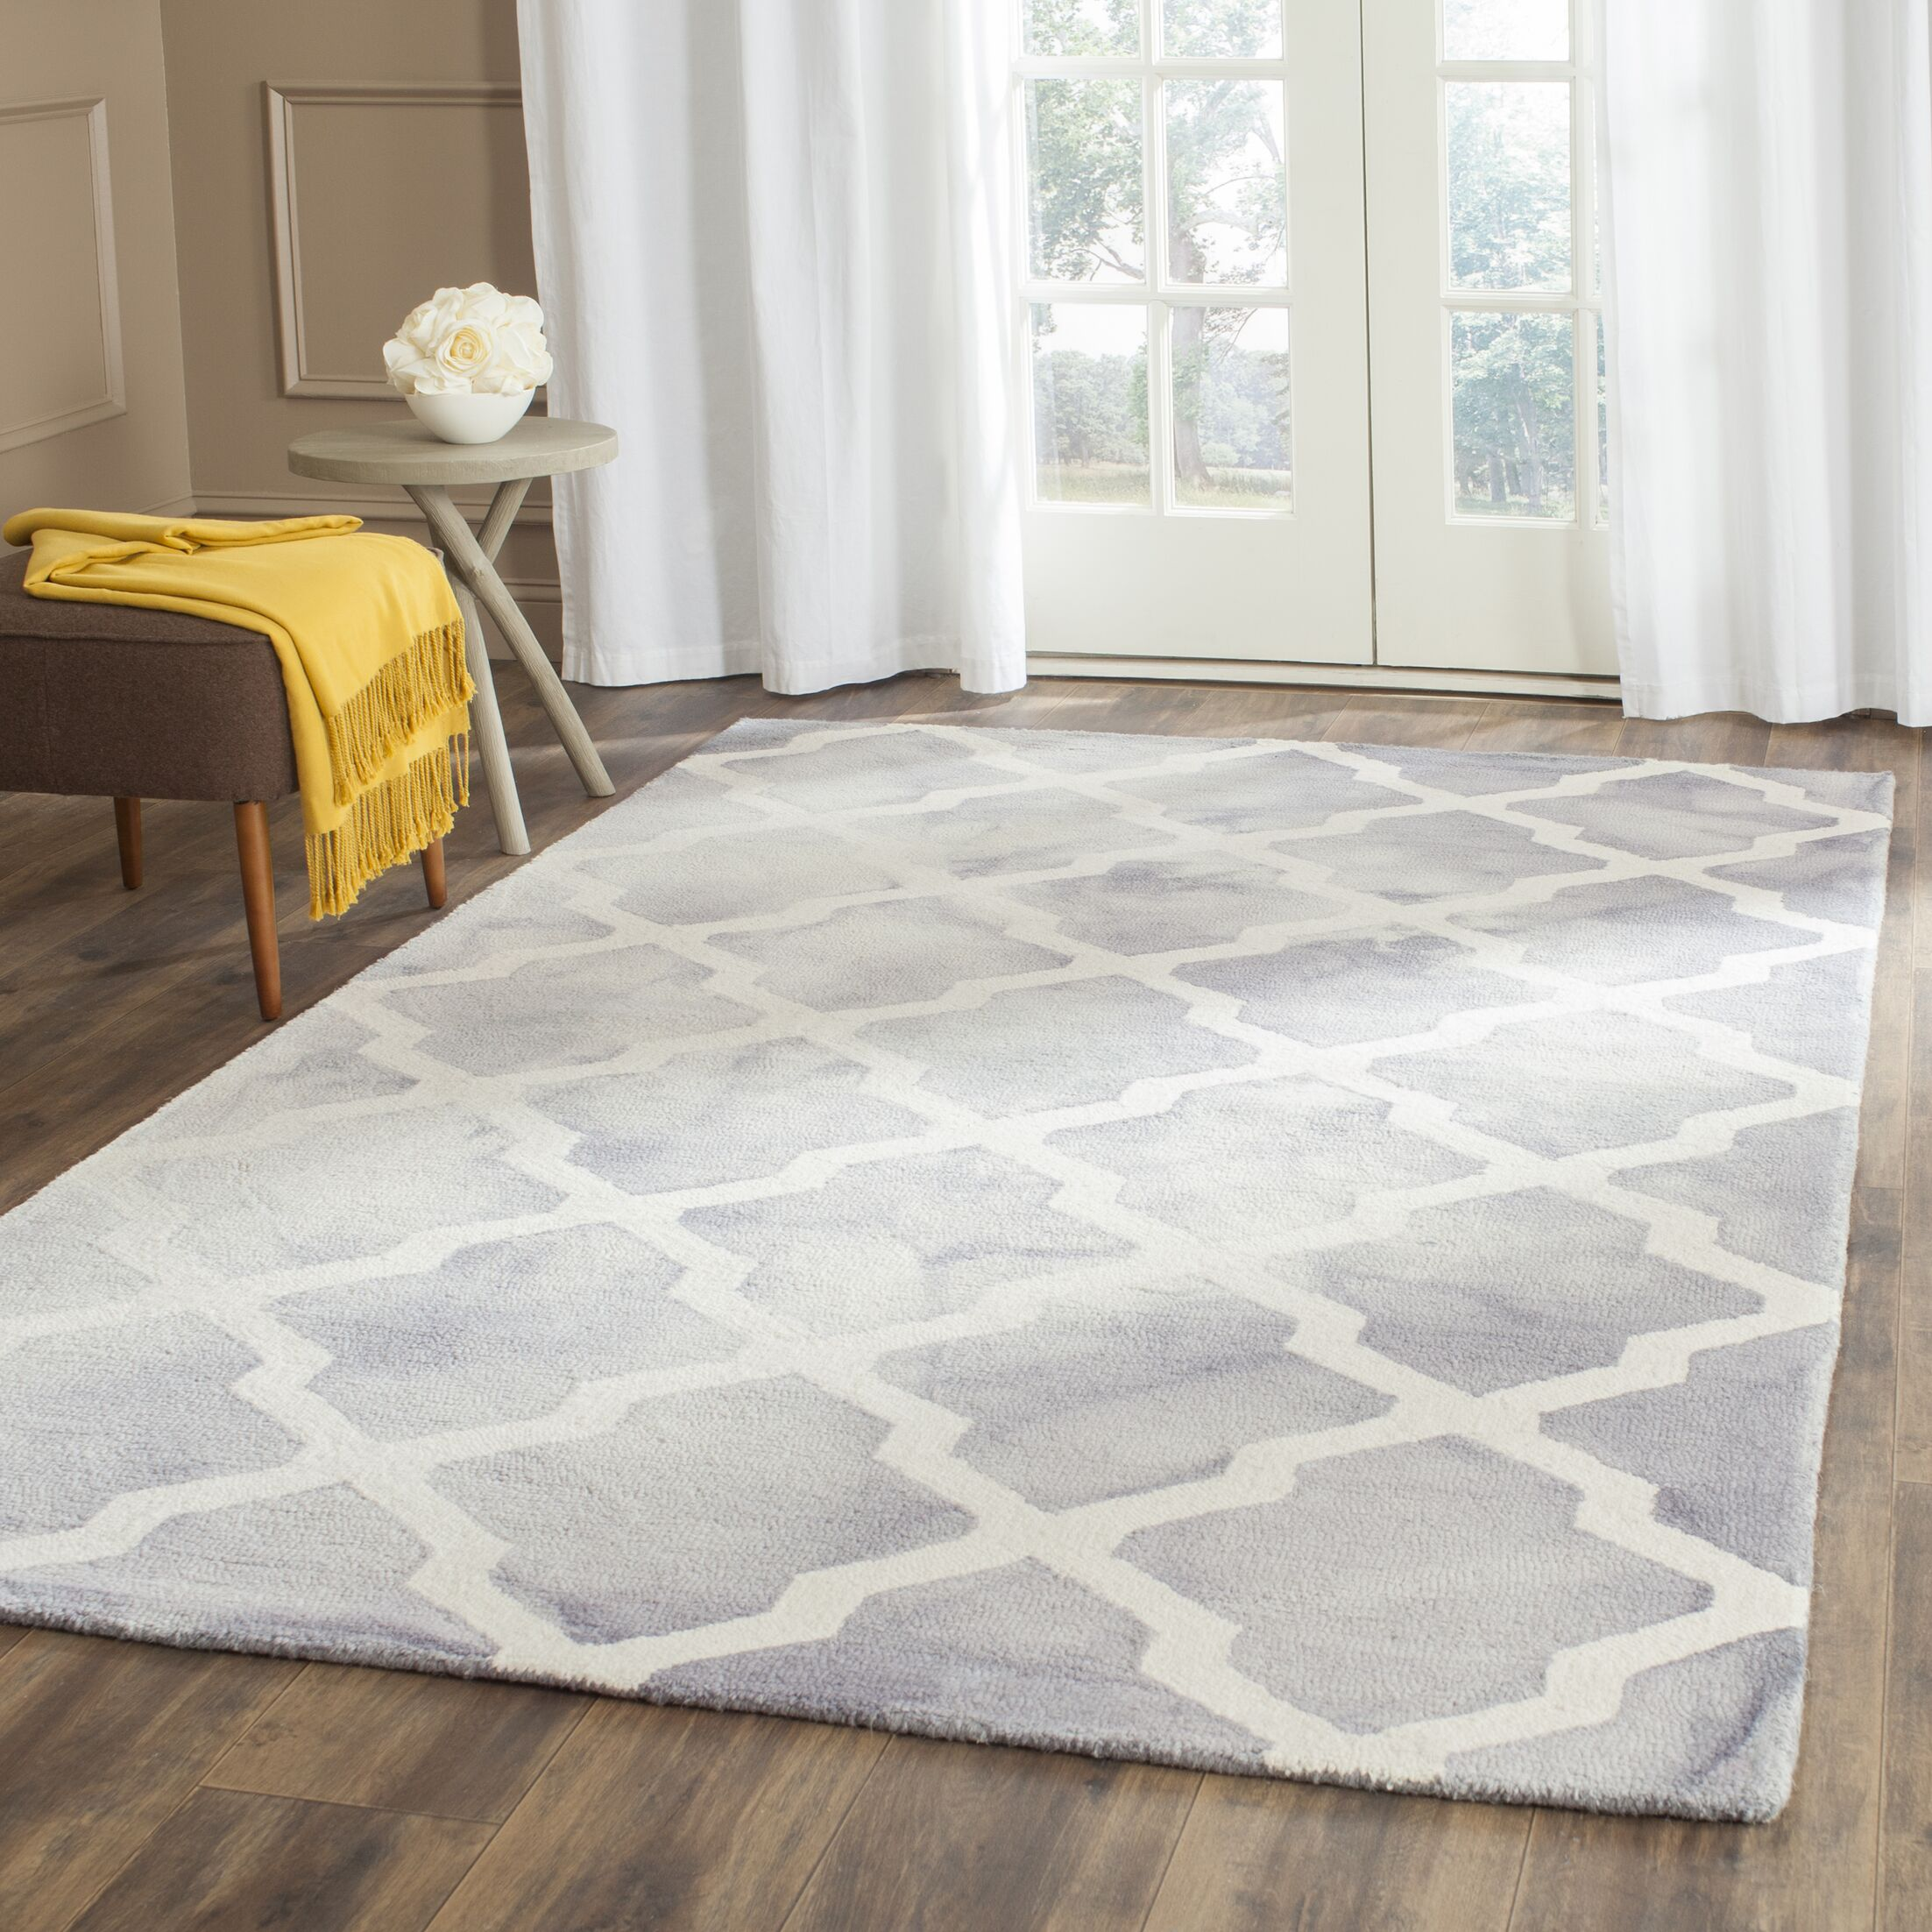 Ashanti Hand-Tufted Grey/Ivory Area Rug Rug Size: Rectangle 8' x 10'